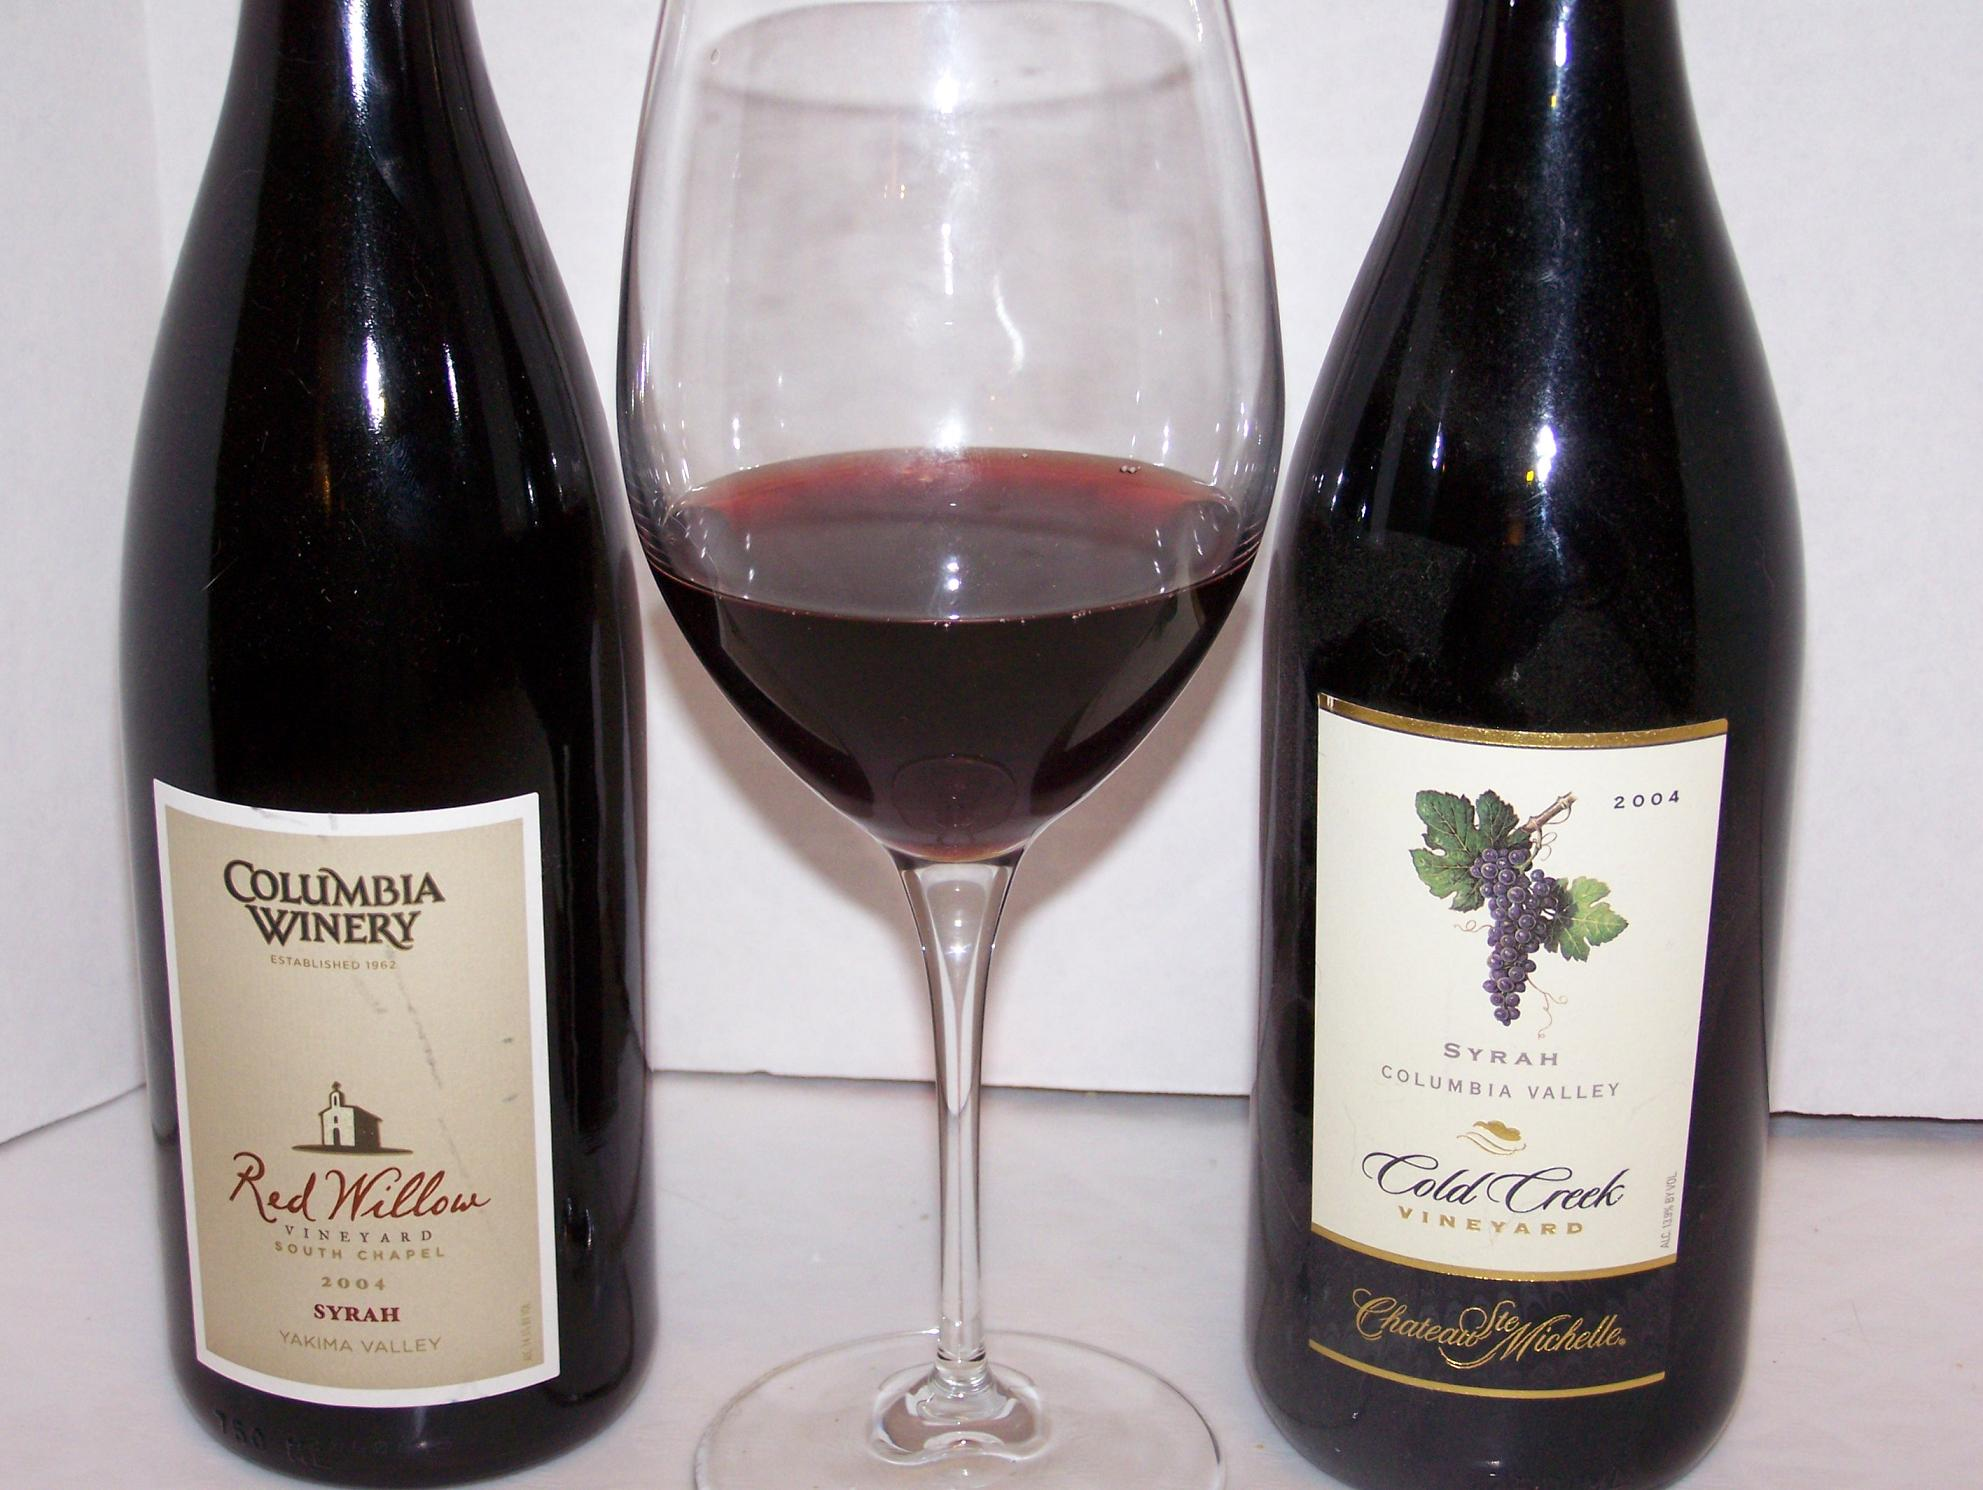 A Great Weekend Wine- Estrella Creek 2004 Petite Sirah